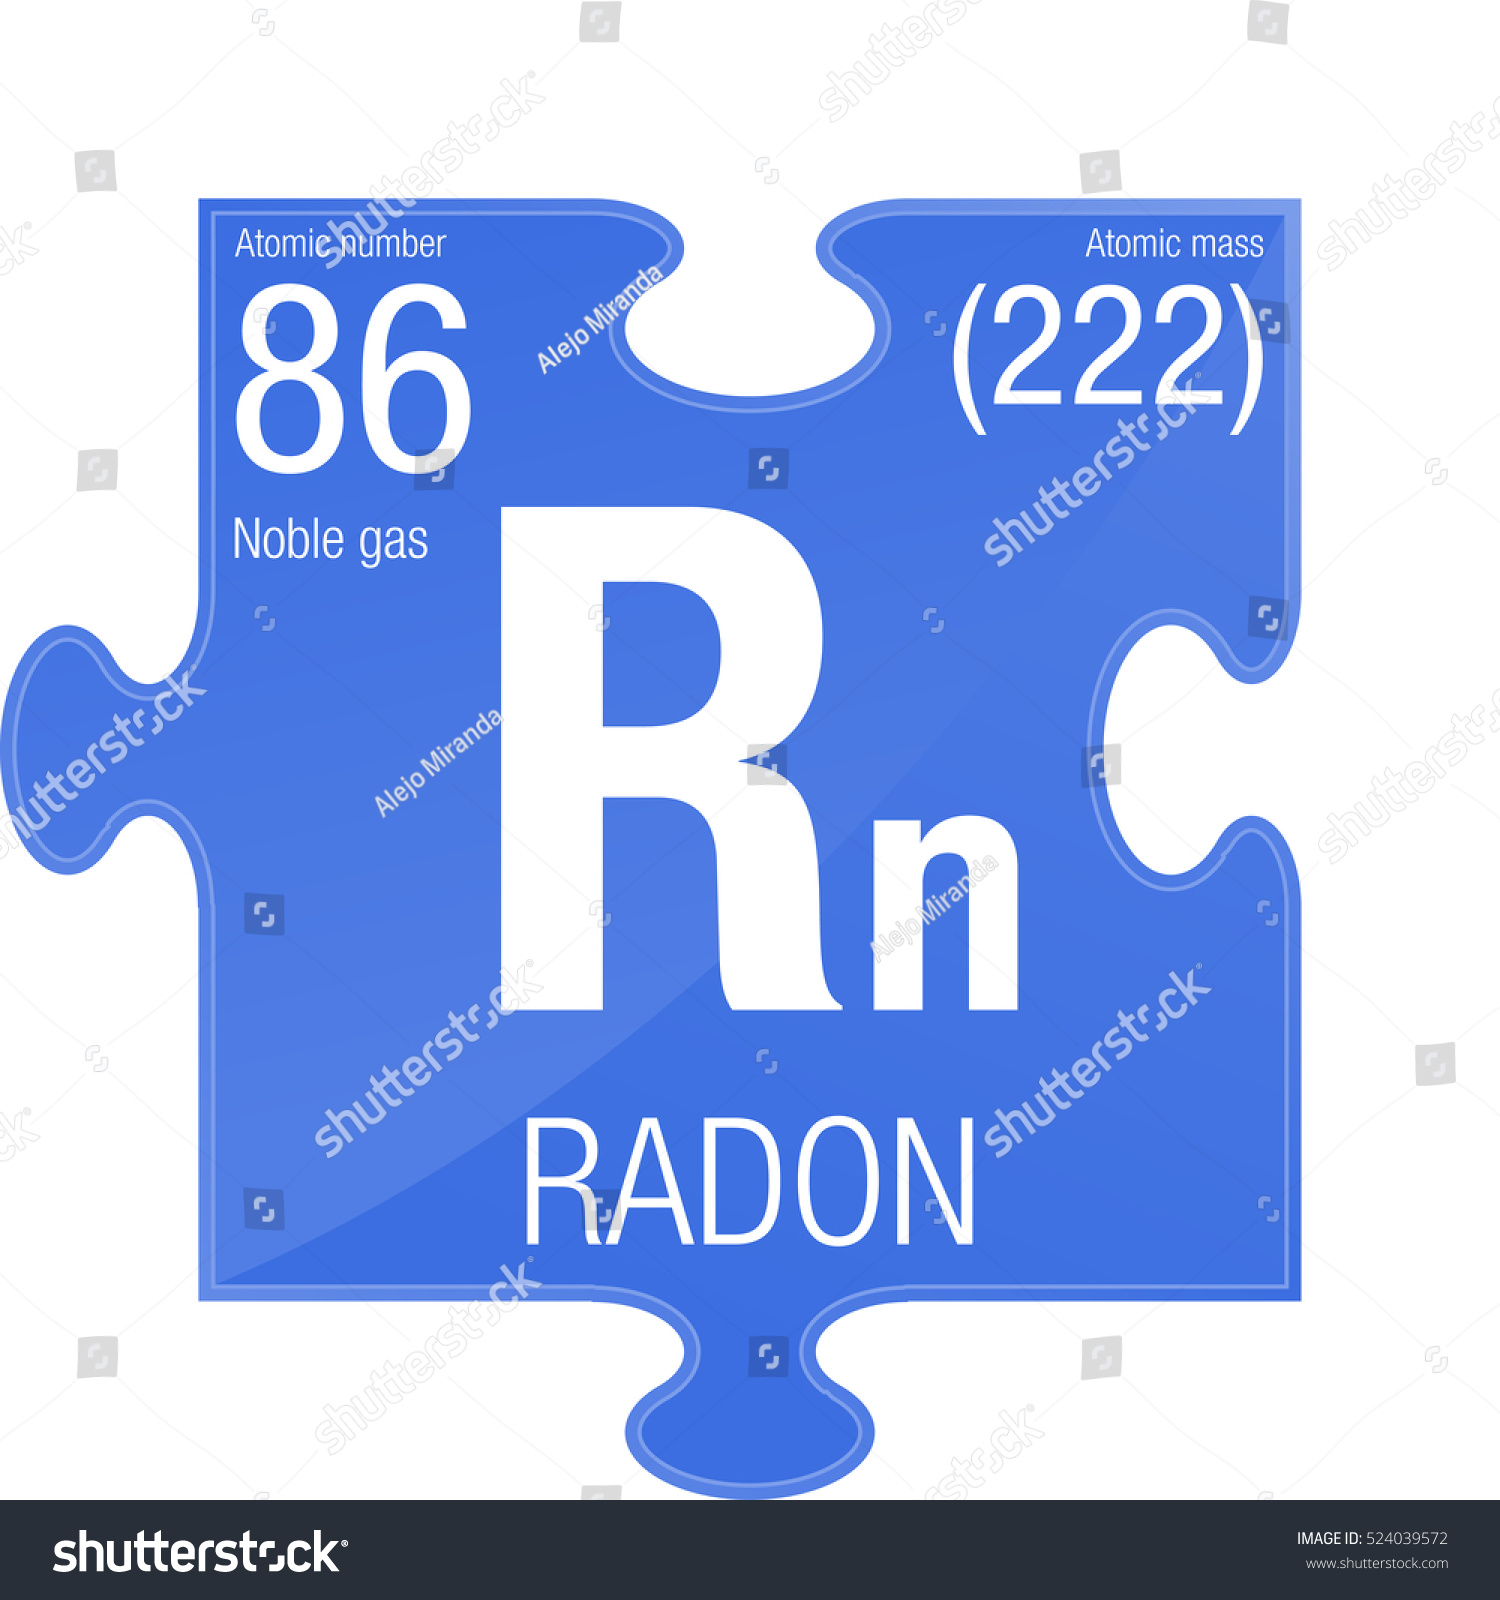 Radon periodic table facts gallery periodic table images hobart k12 periodic table images periodic table images radon on the periodic table images periodic table gamestrikefo Image collections